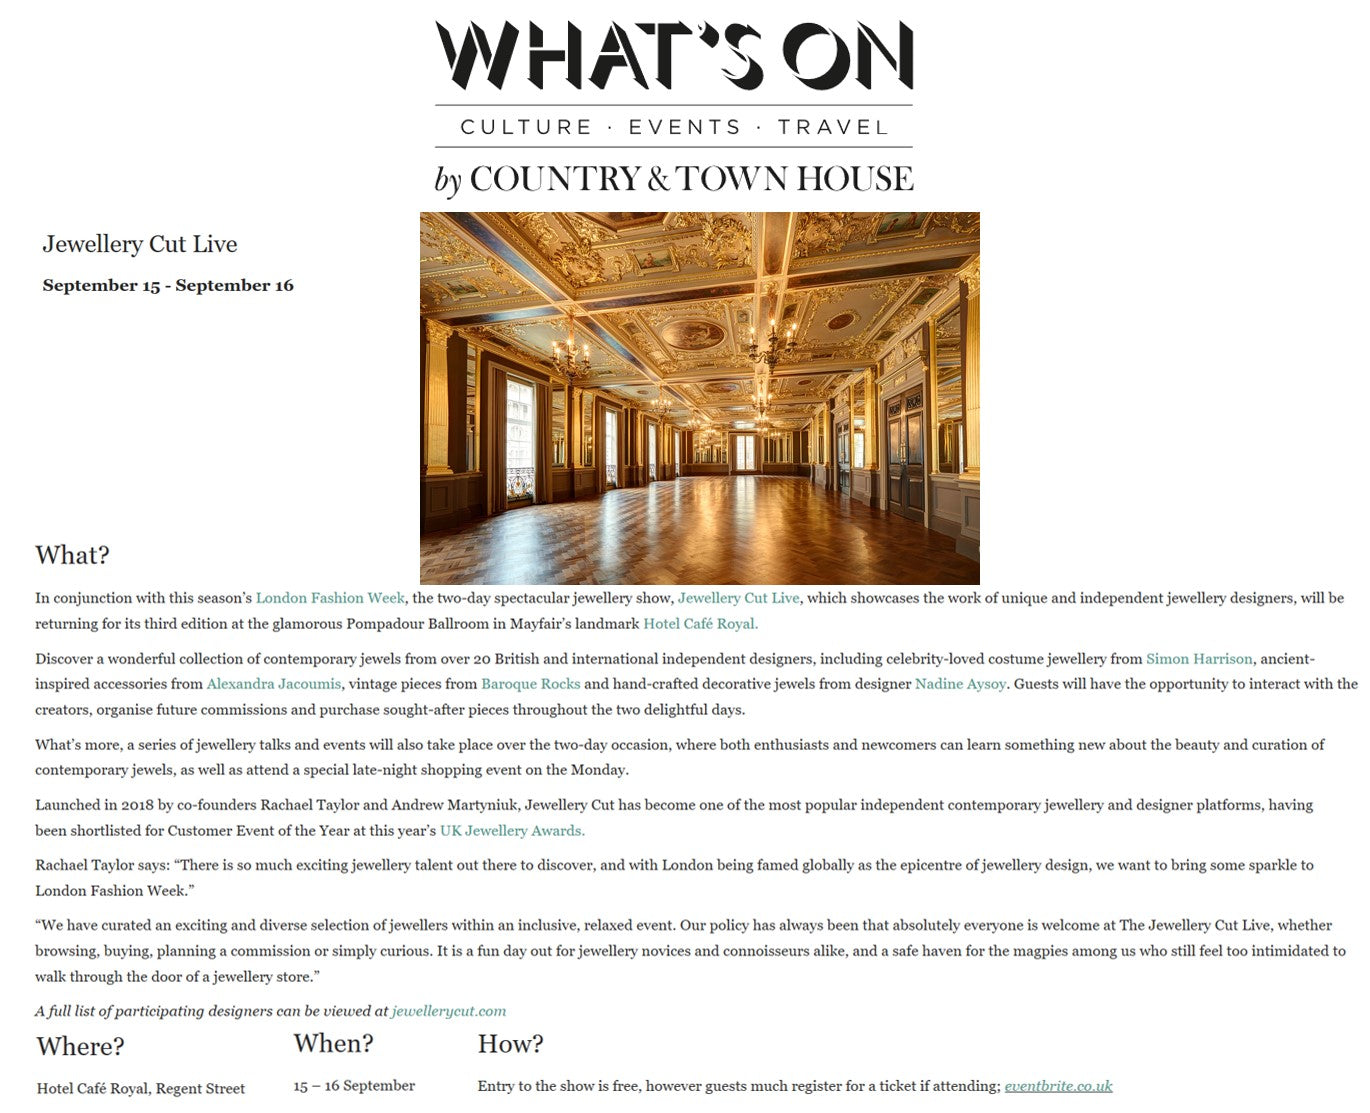 What's On by Country & Town House